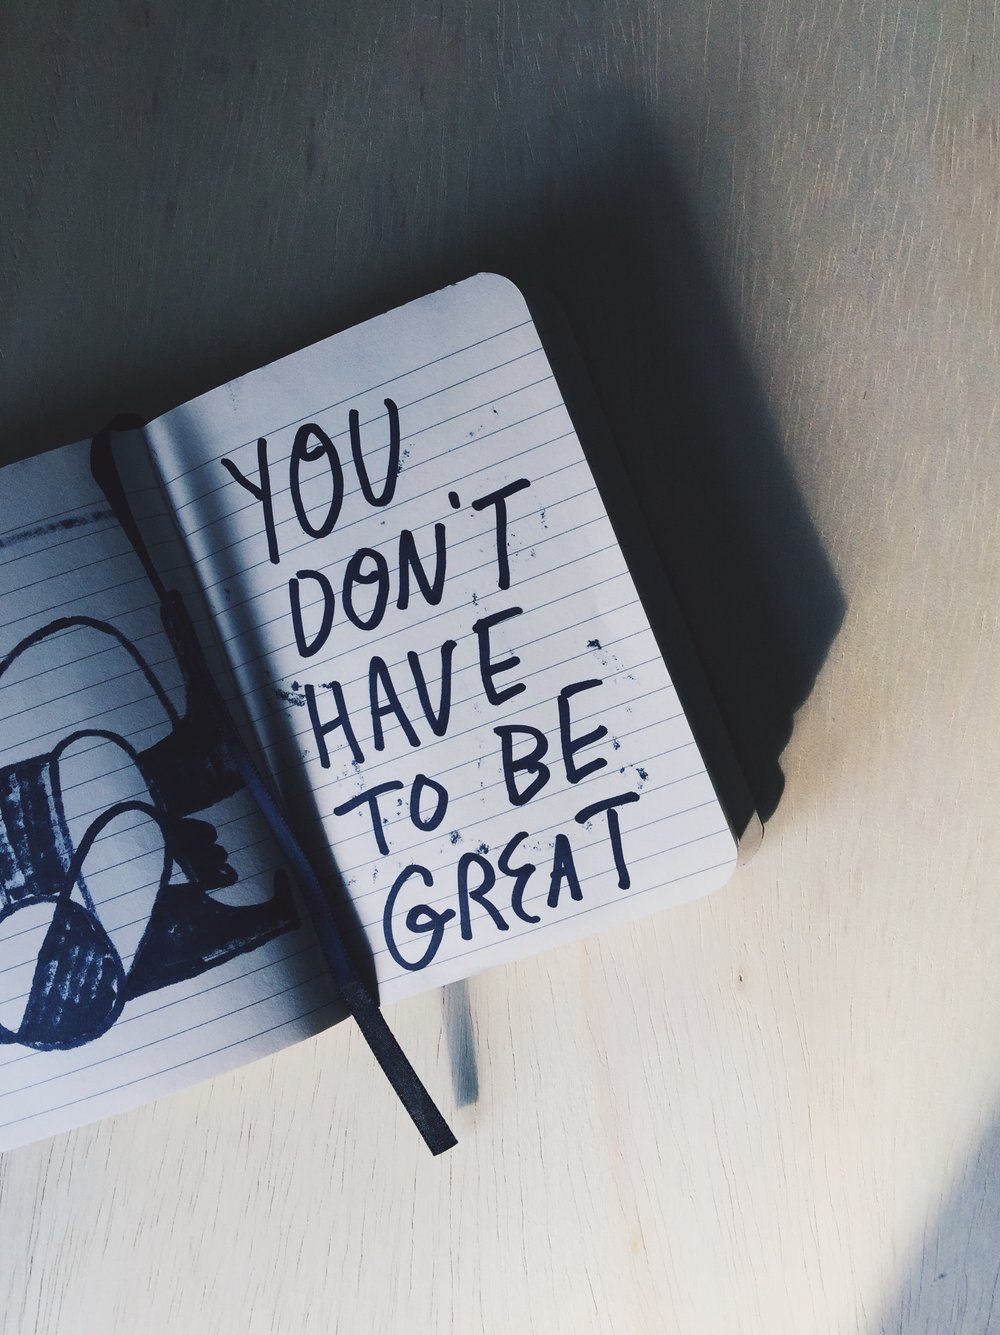 You don't have to be great message by Kyle Steed